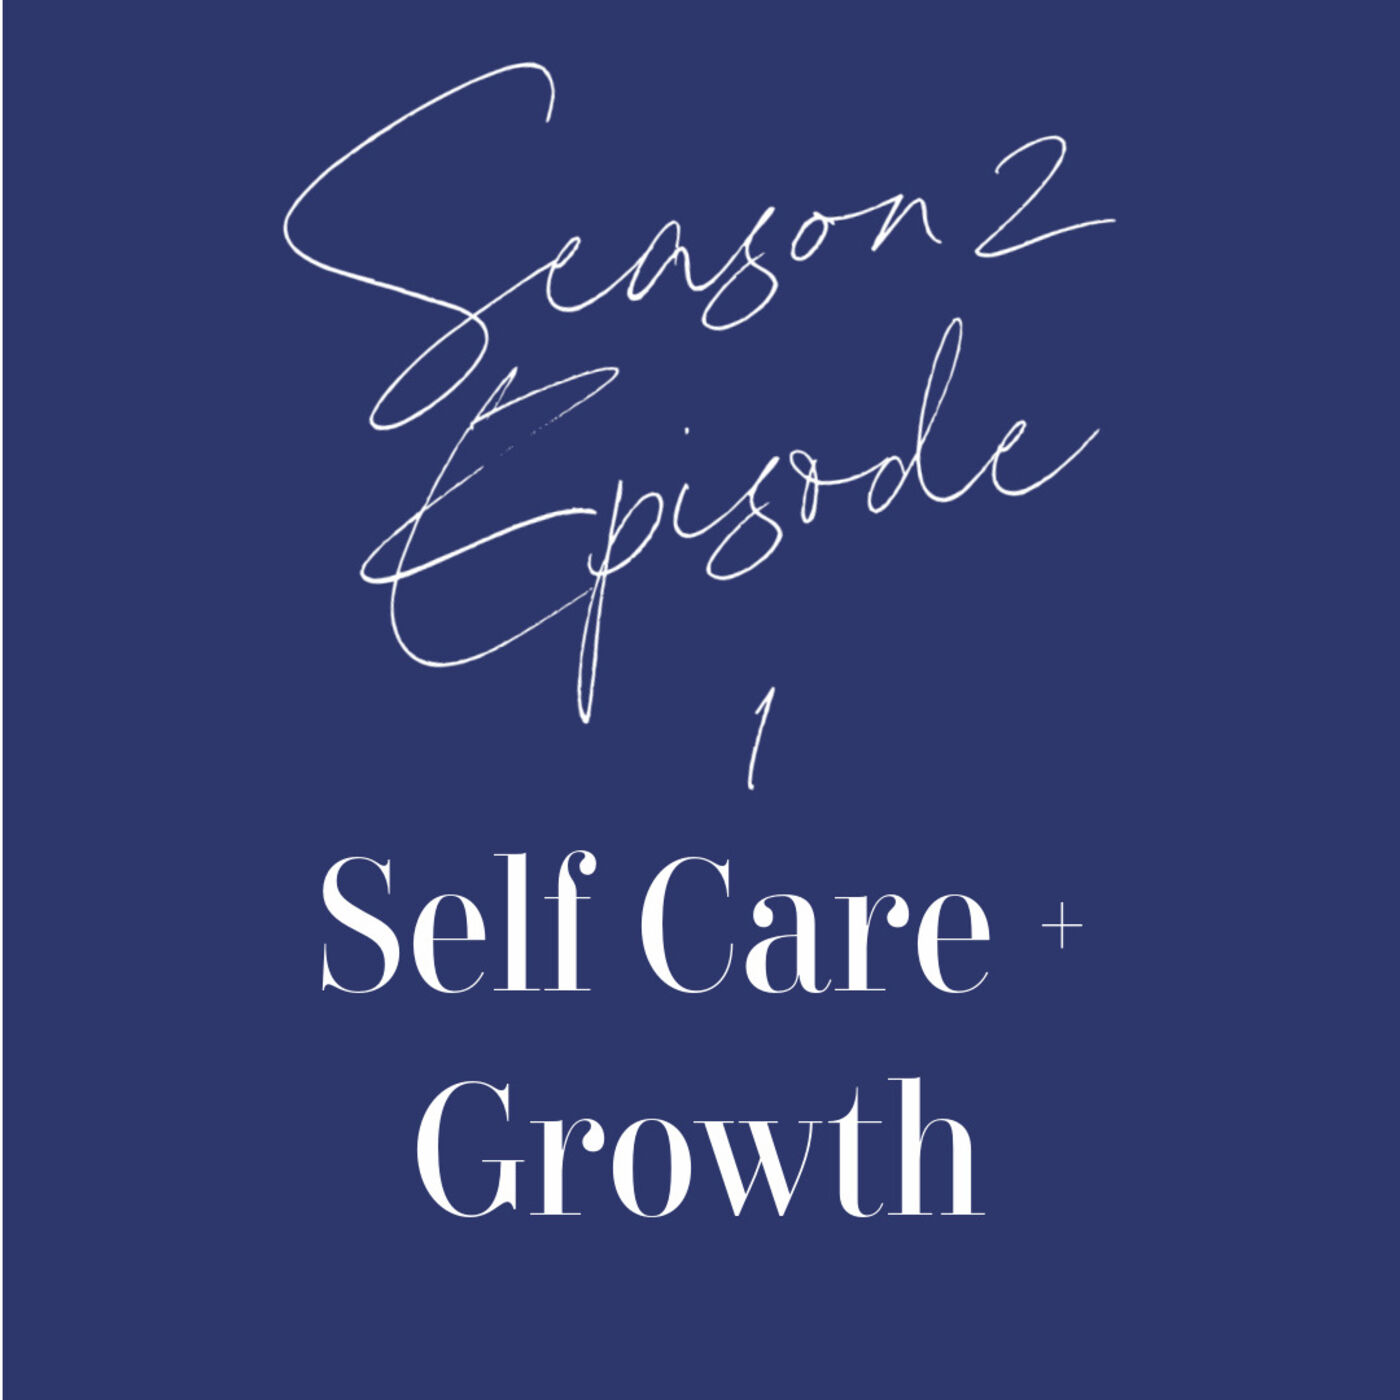 Season 2 / Episode 1: Self Care + The Growth That Follows